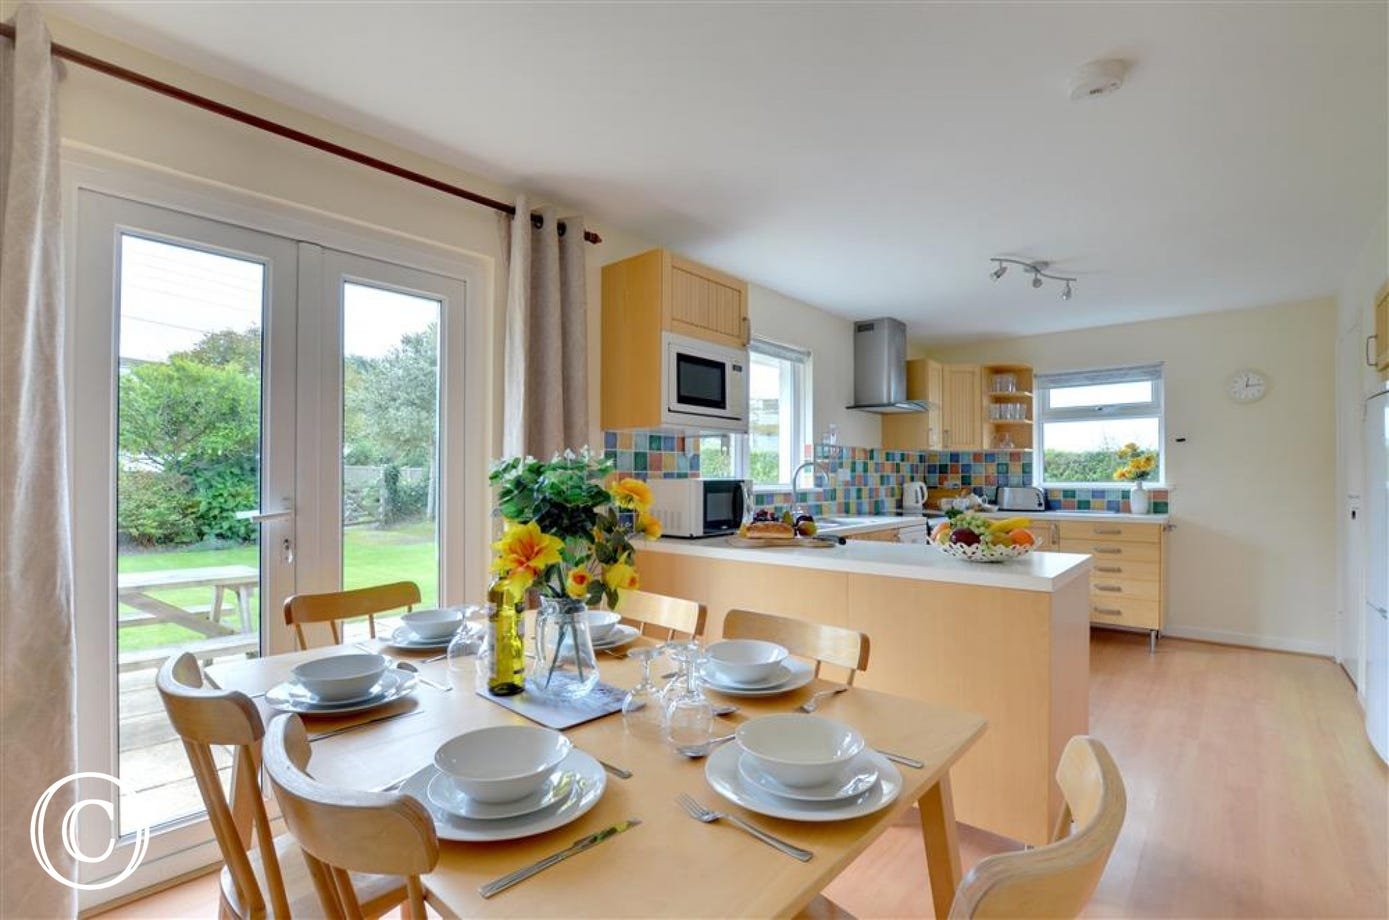 The spacious modern dining kitchen has patio doors out into the garden